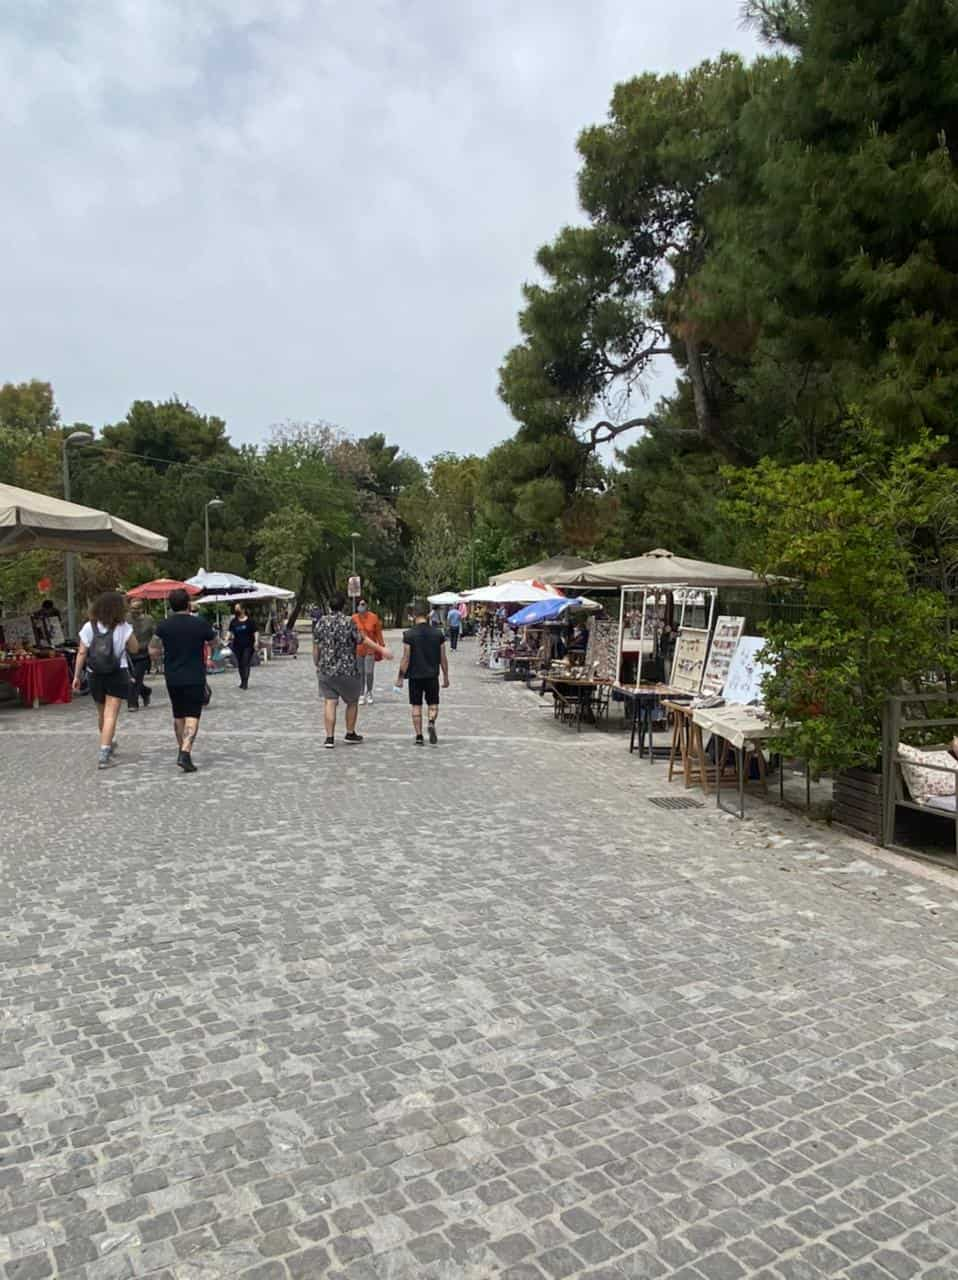 Cafes and Restaurants finally open in Greece 17